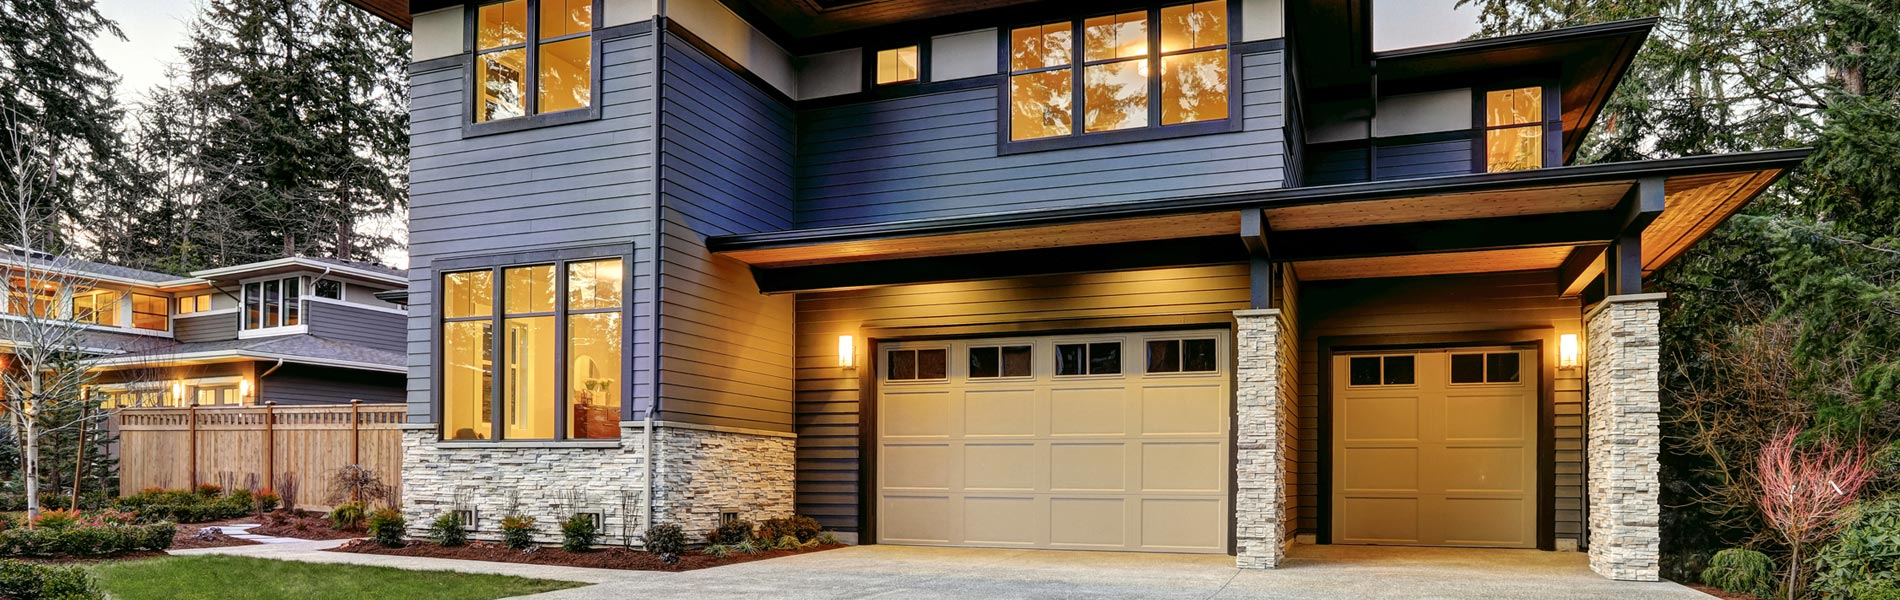 Community Garage Door Service Bronx, NY 347-918-4887